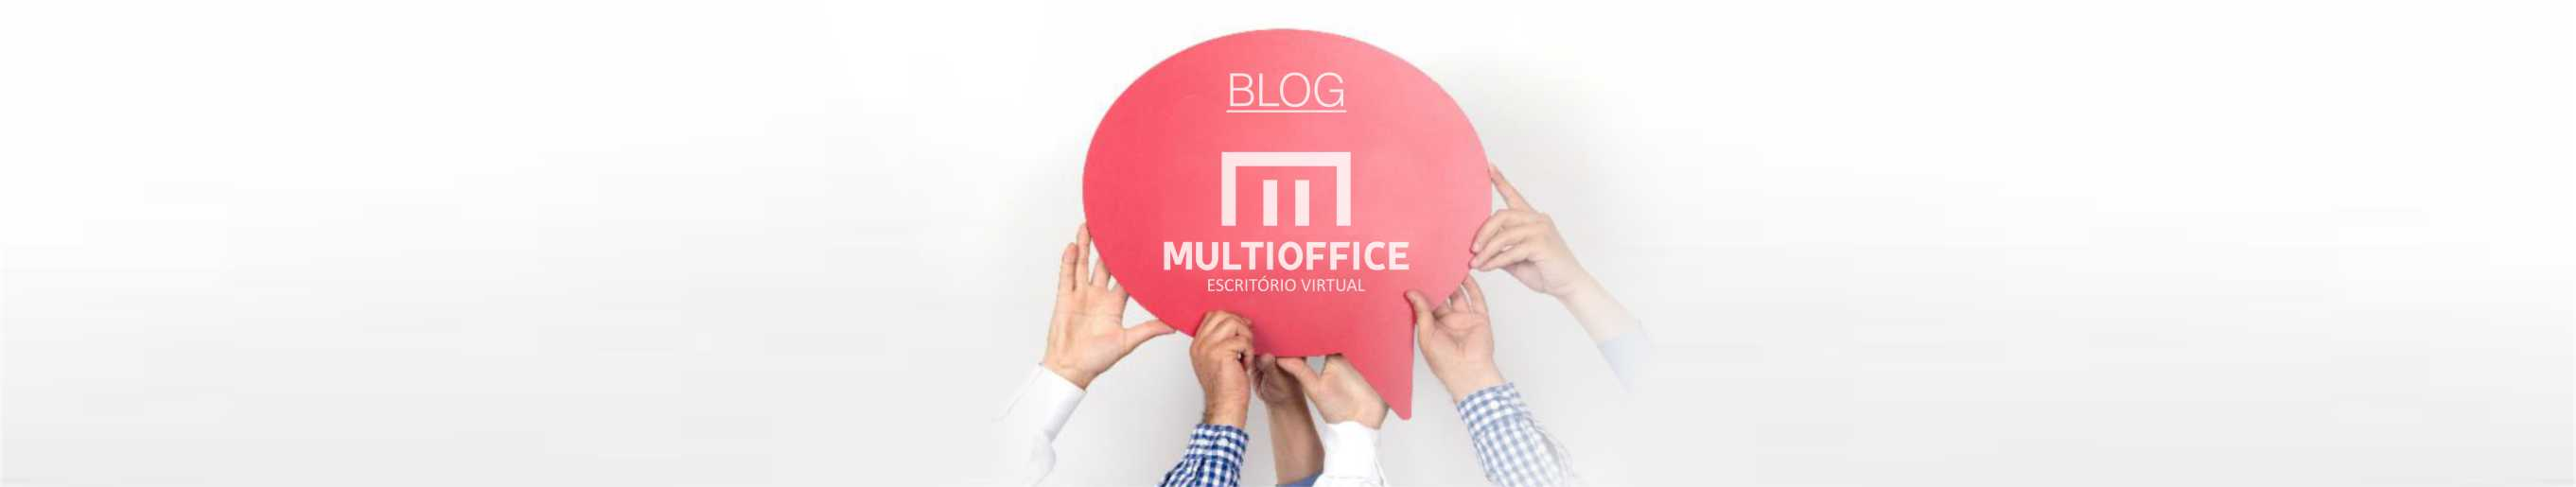 Blog Multioffice Escritório Virtual